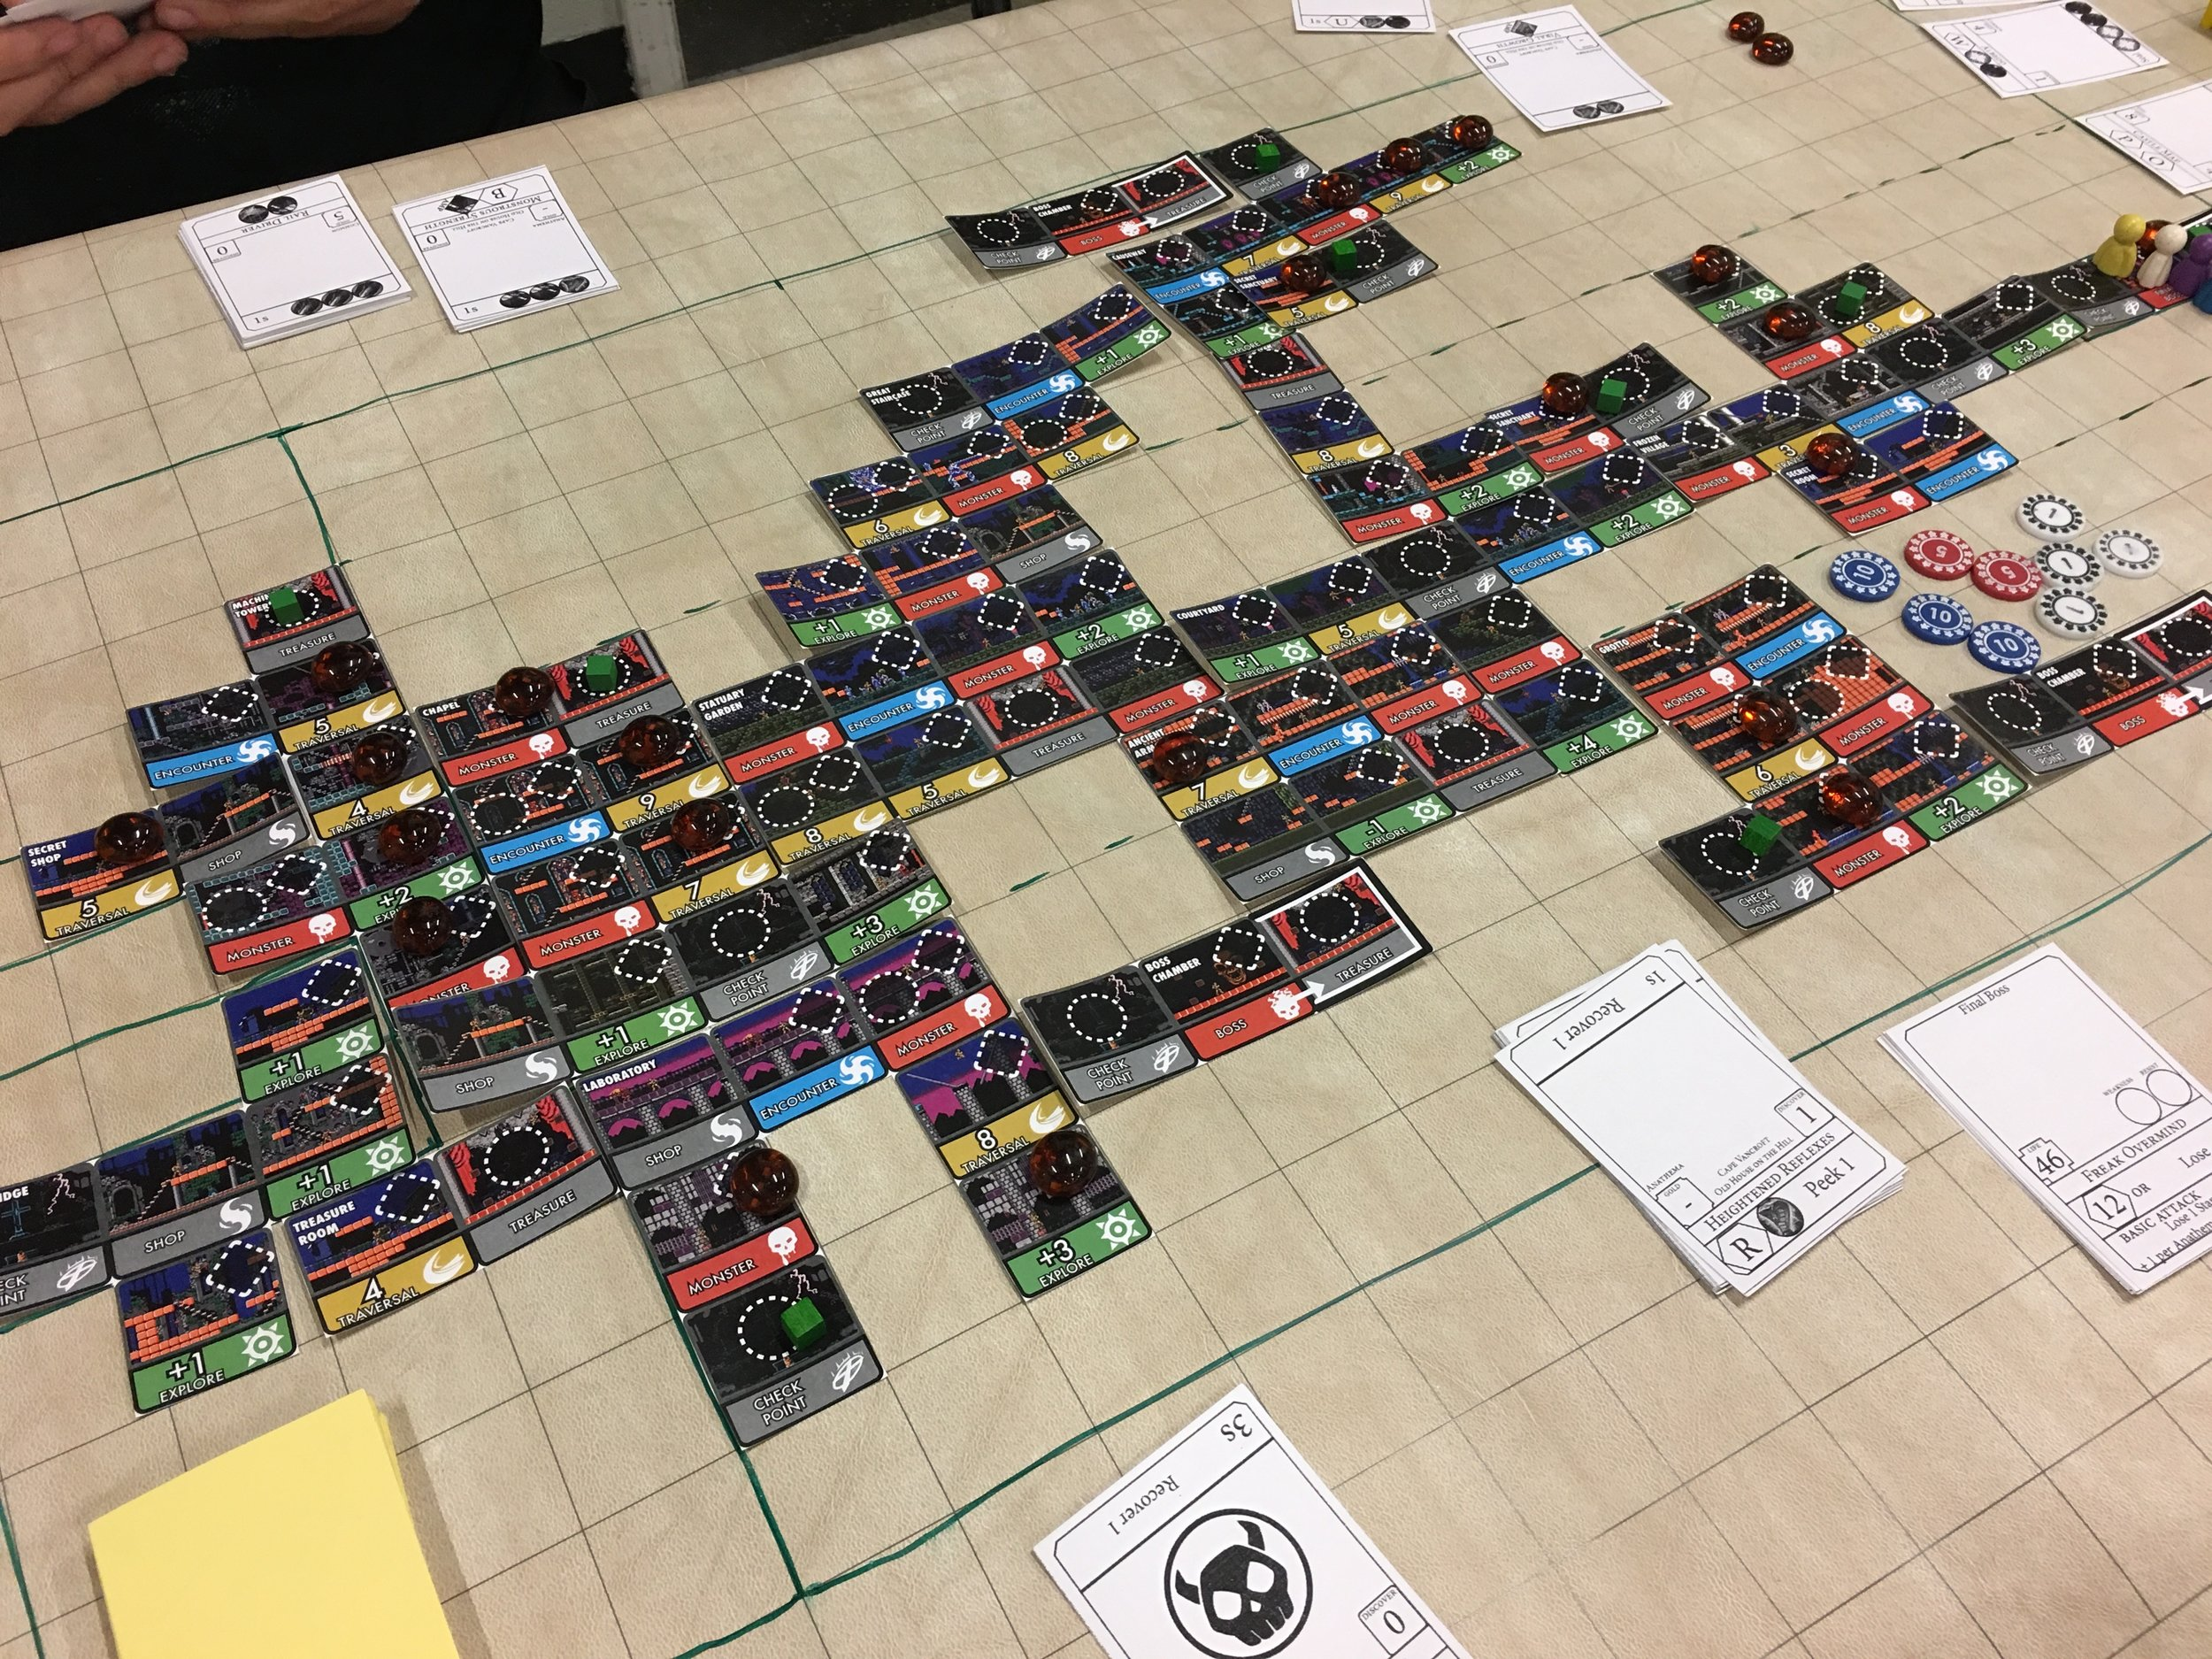 At the end of the game, the thing we built with our adventures looked like this! Kind of reminds you of a real Metroidvania game, eh?